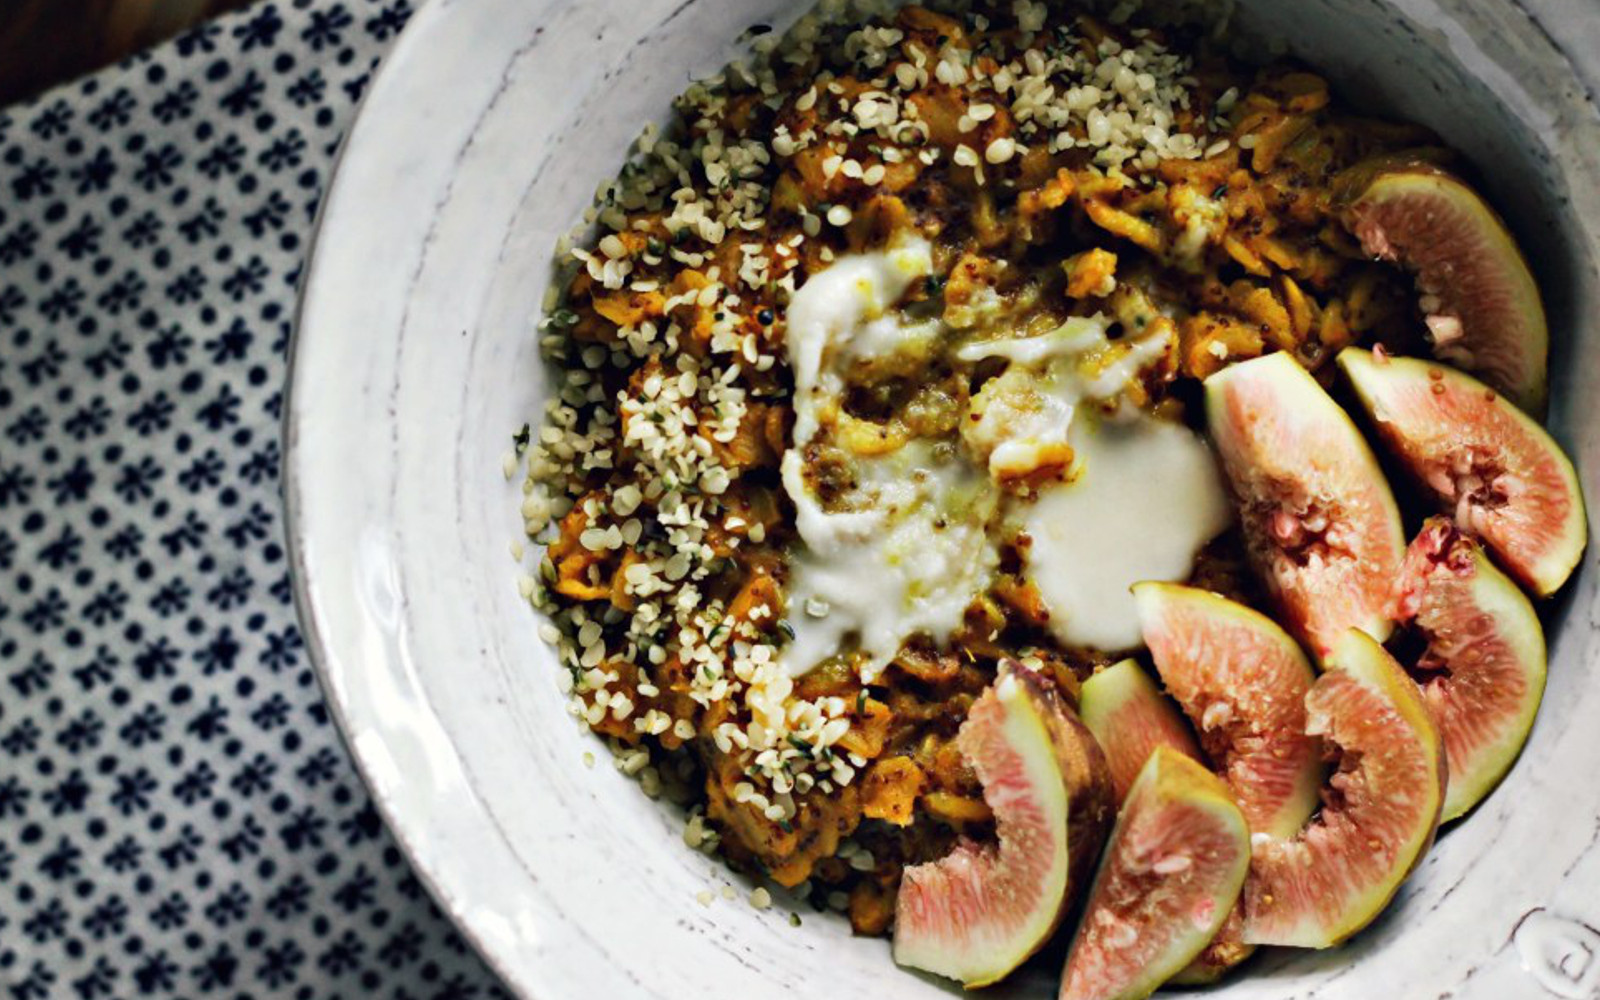 Toasted Turmeric Milk Oat and Teff Porridge